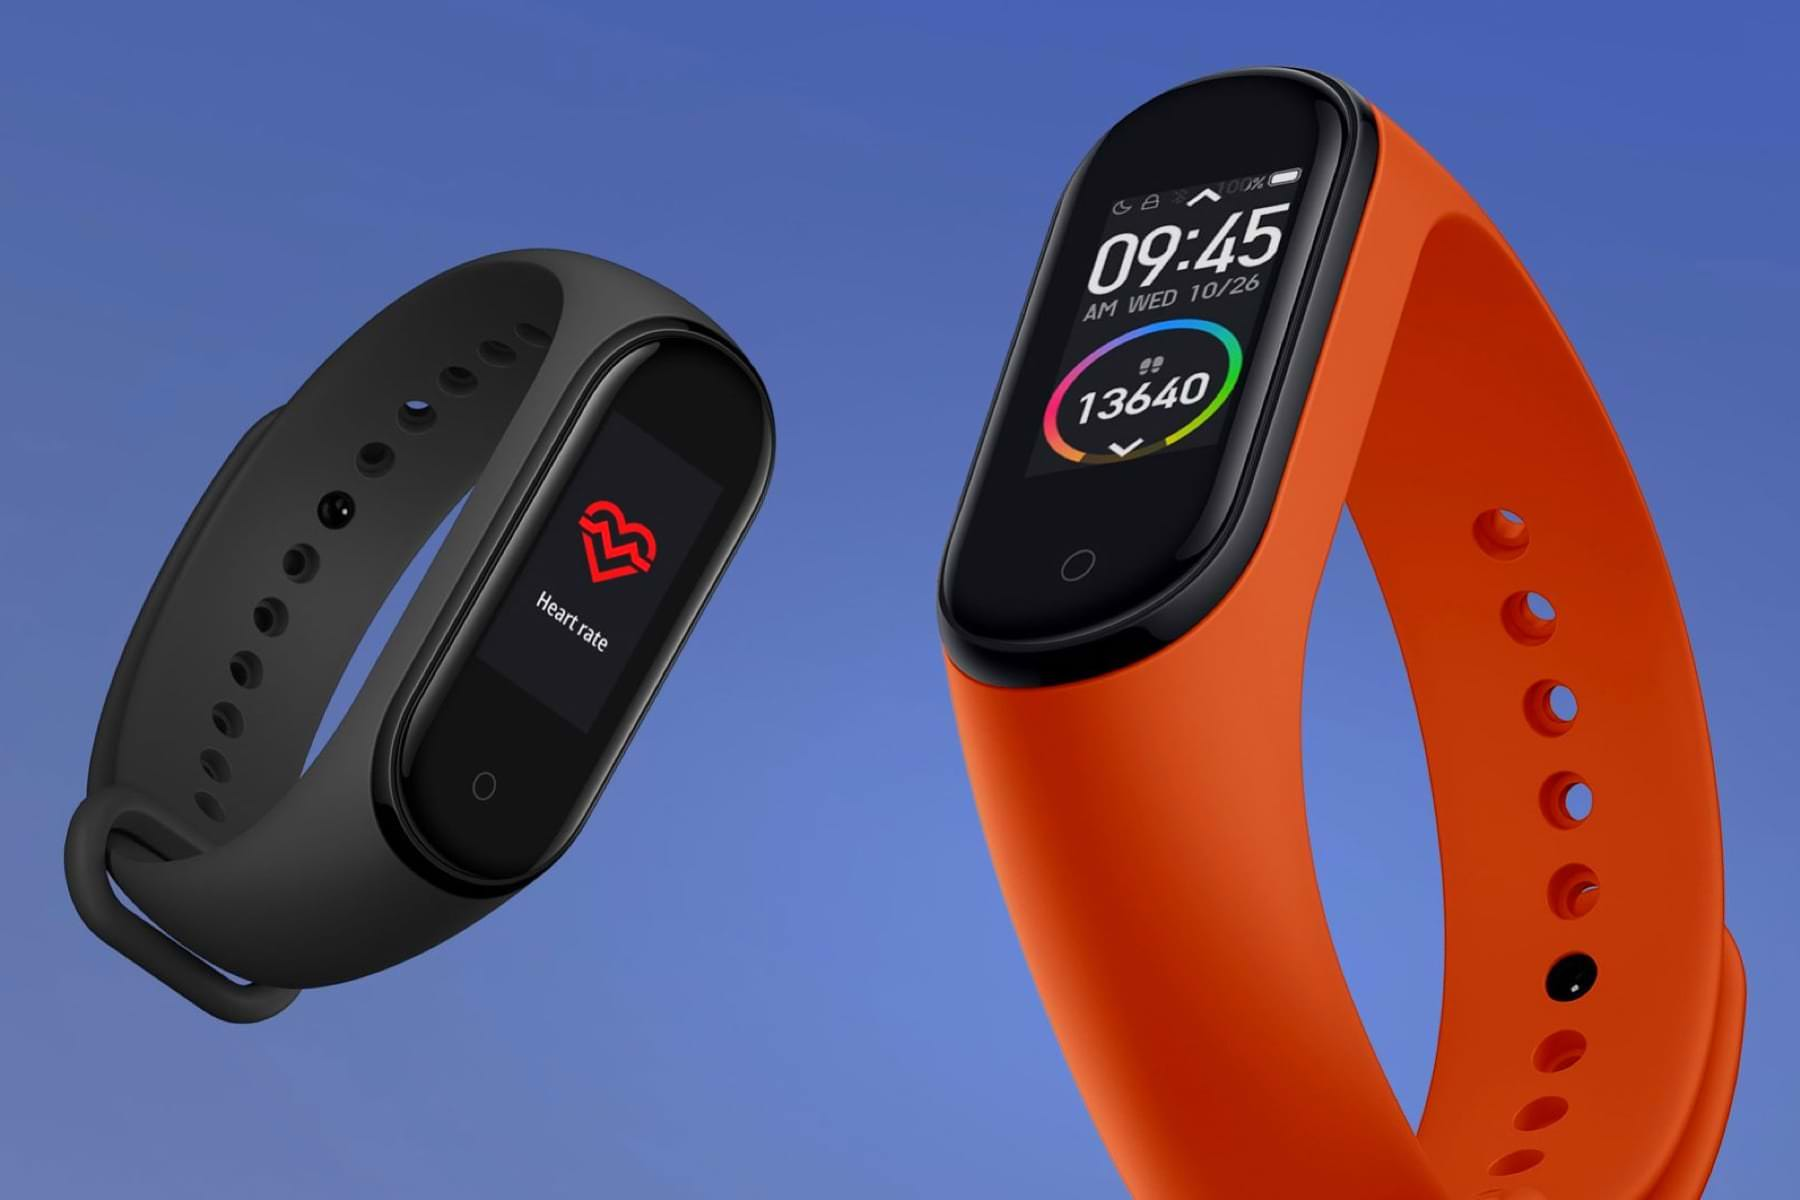 Xiaomi Mi Band 4 made all the shoppers jump with joy